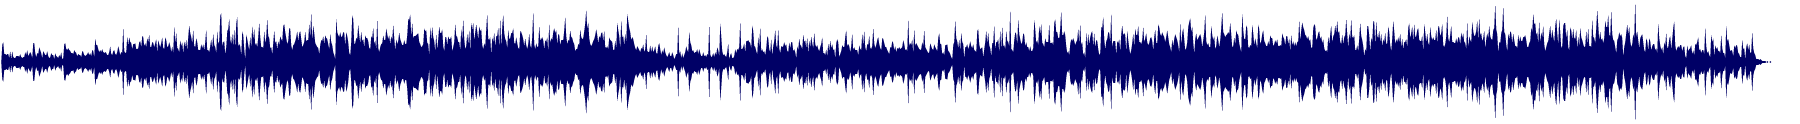 waveform of track #66334